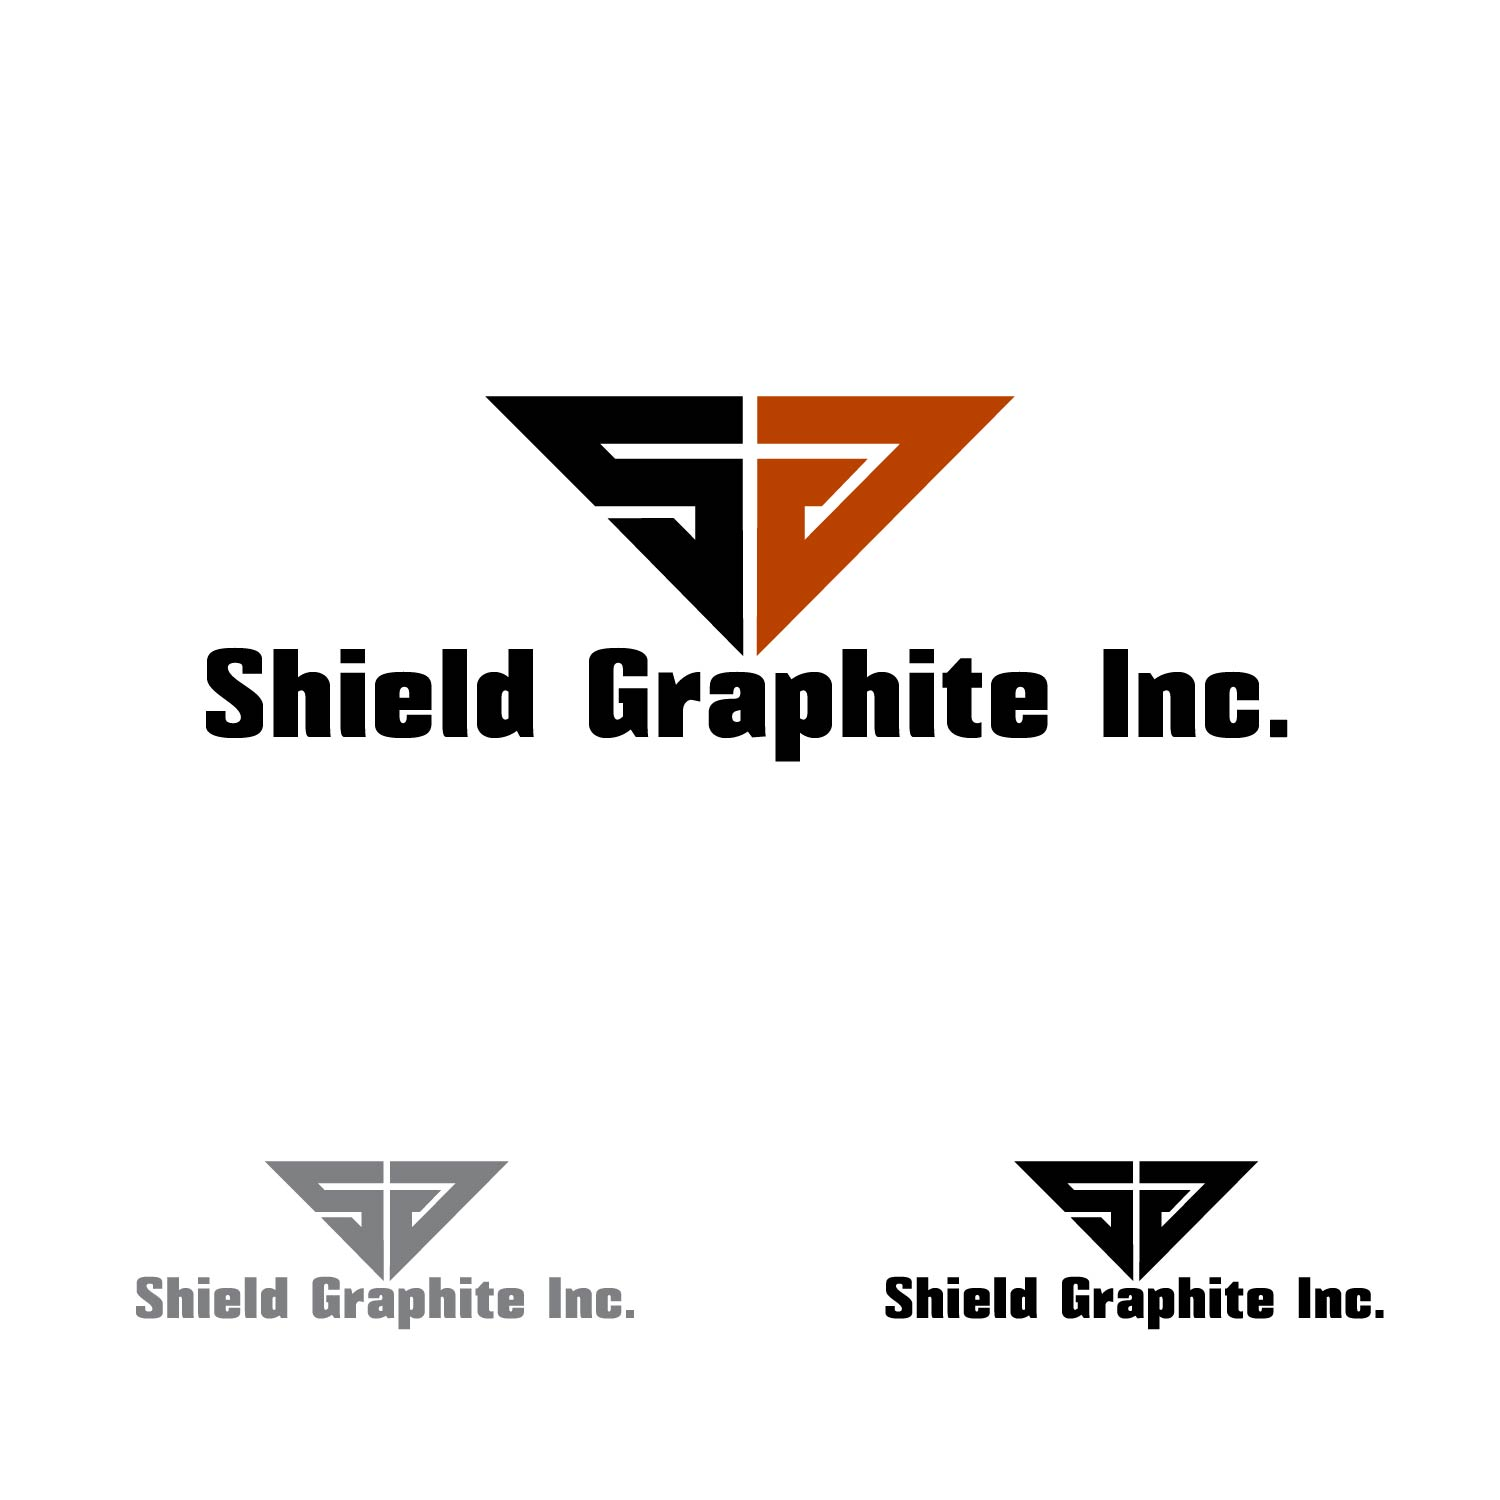 Logo Design by lagalag - Entry No. 147 in the Logo Design Contest Imaginative Logo Design for Shield Graphite Inc..